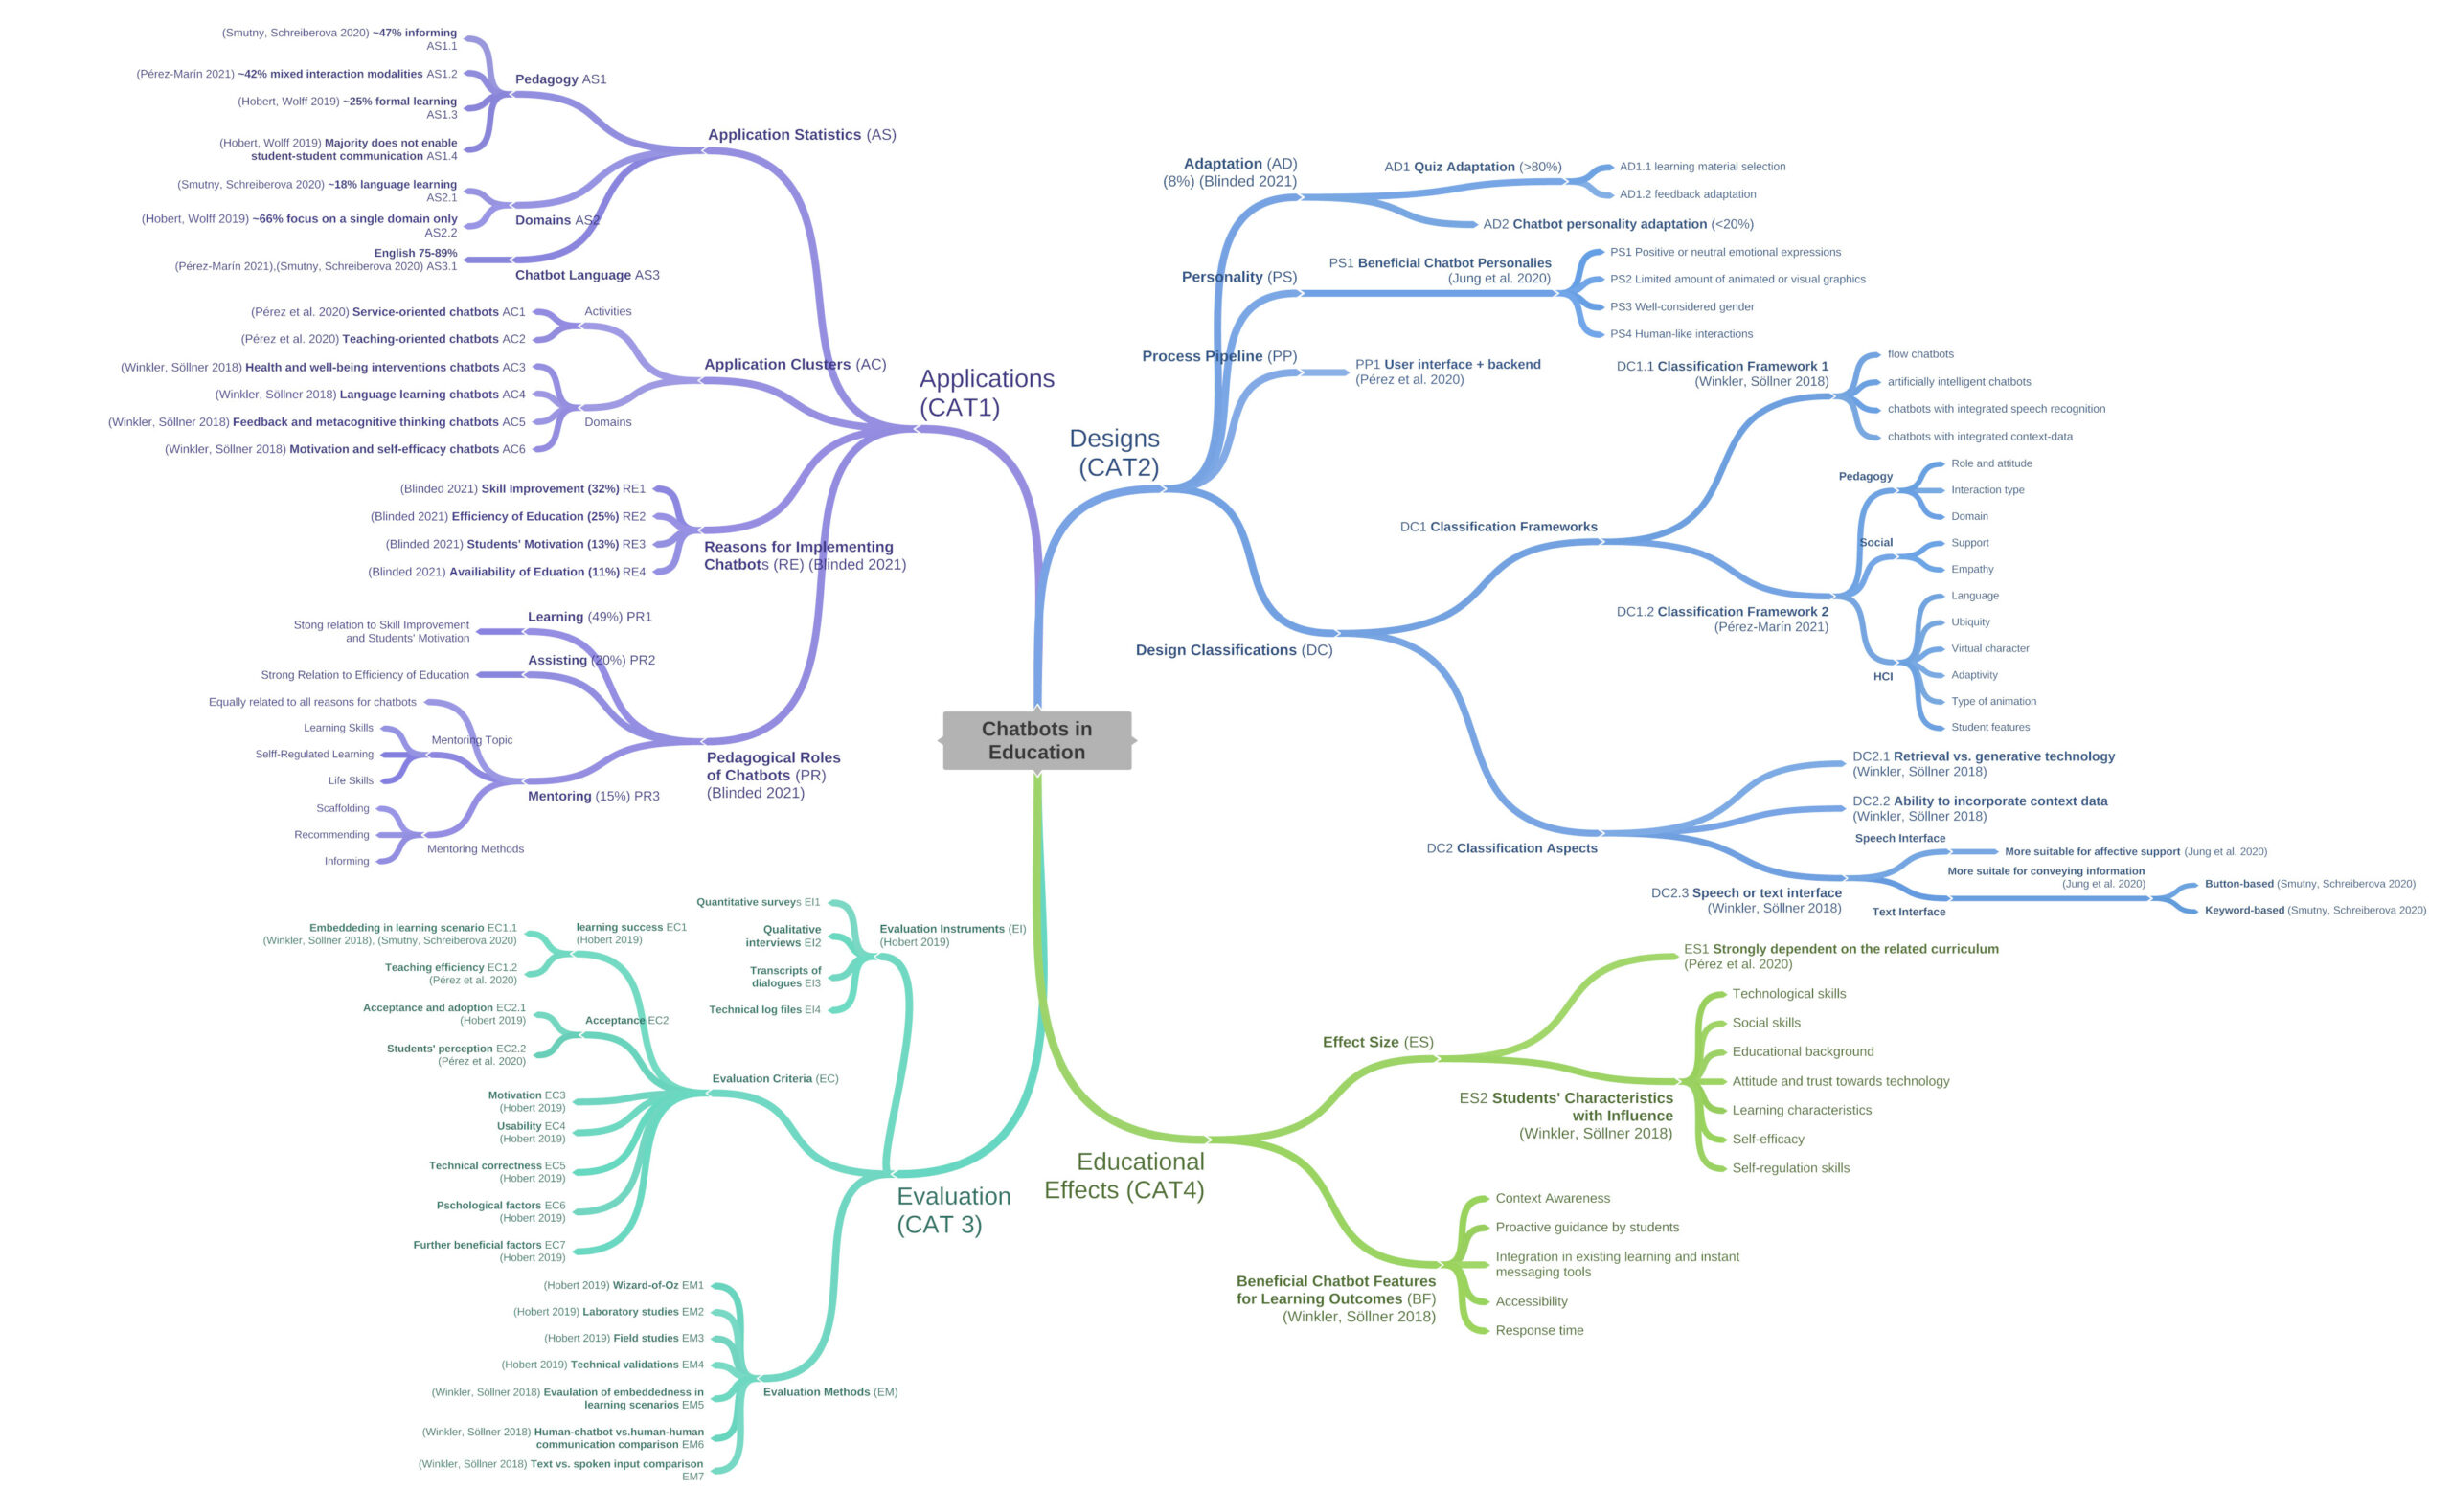 Concept Map of Literature on Chatbots in Education